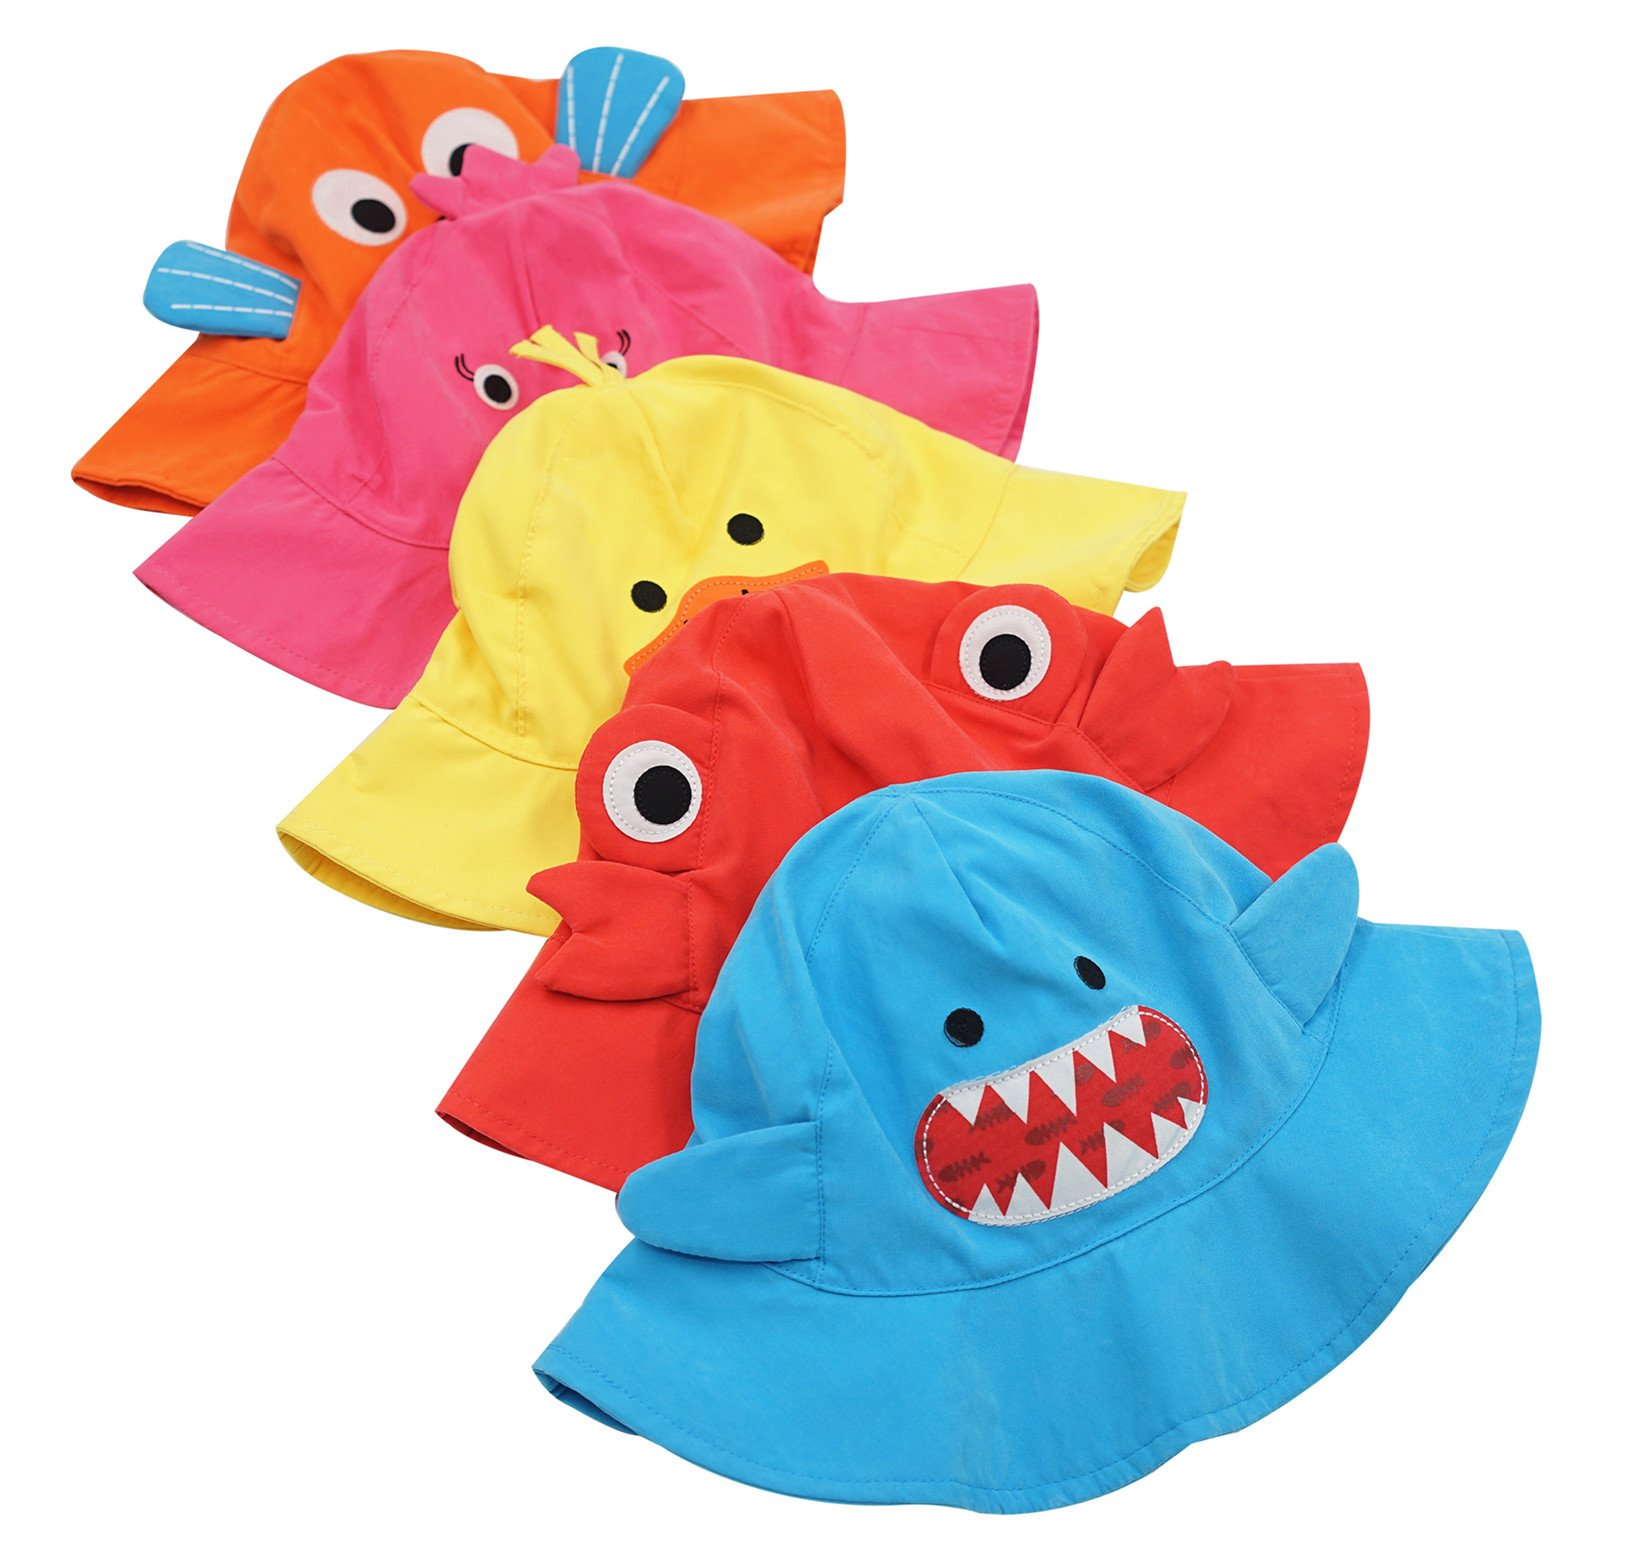 Connectyle Baby Infant Toddler Kids' UPF 50+ Sun Protection Hat Cute Cartoon Bucket Sun Hats by Connectyle (Image #5)